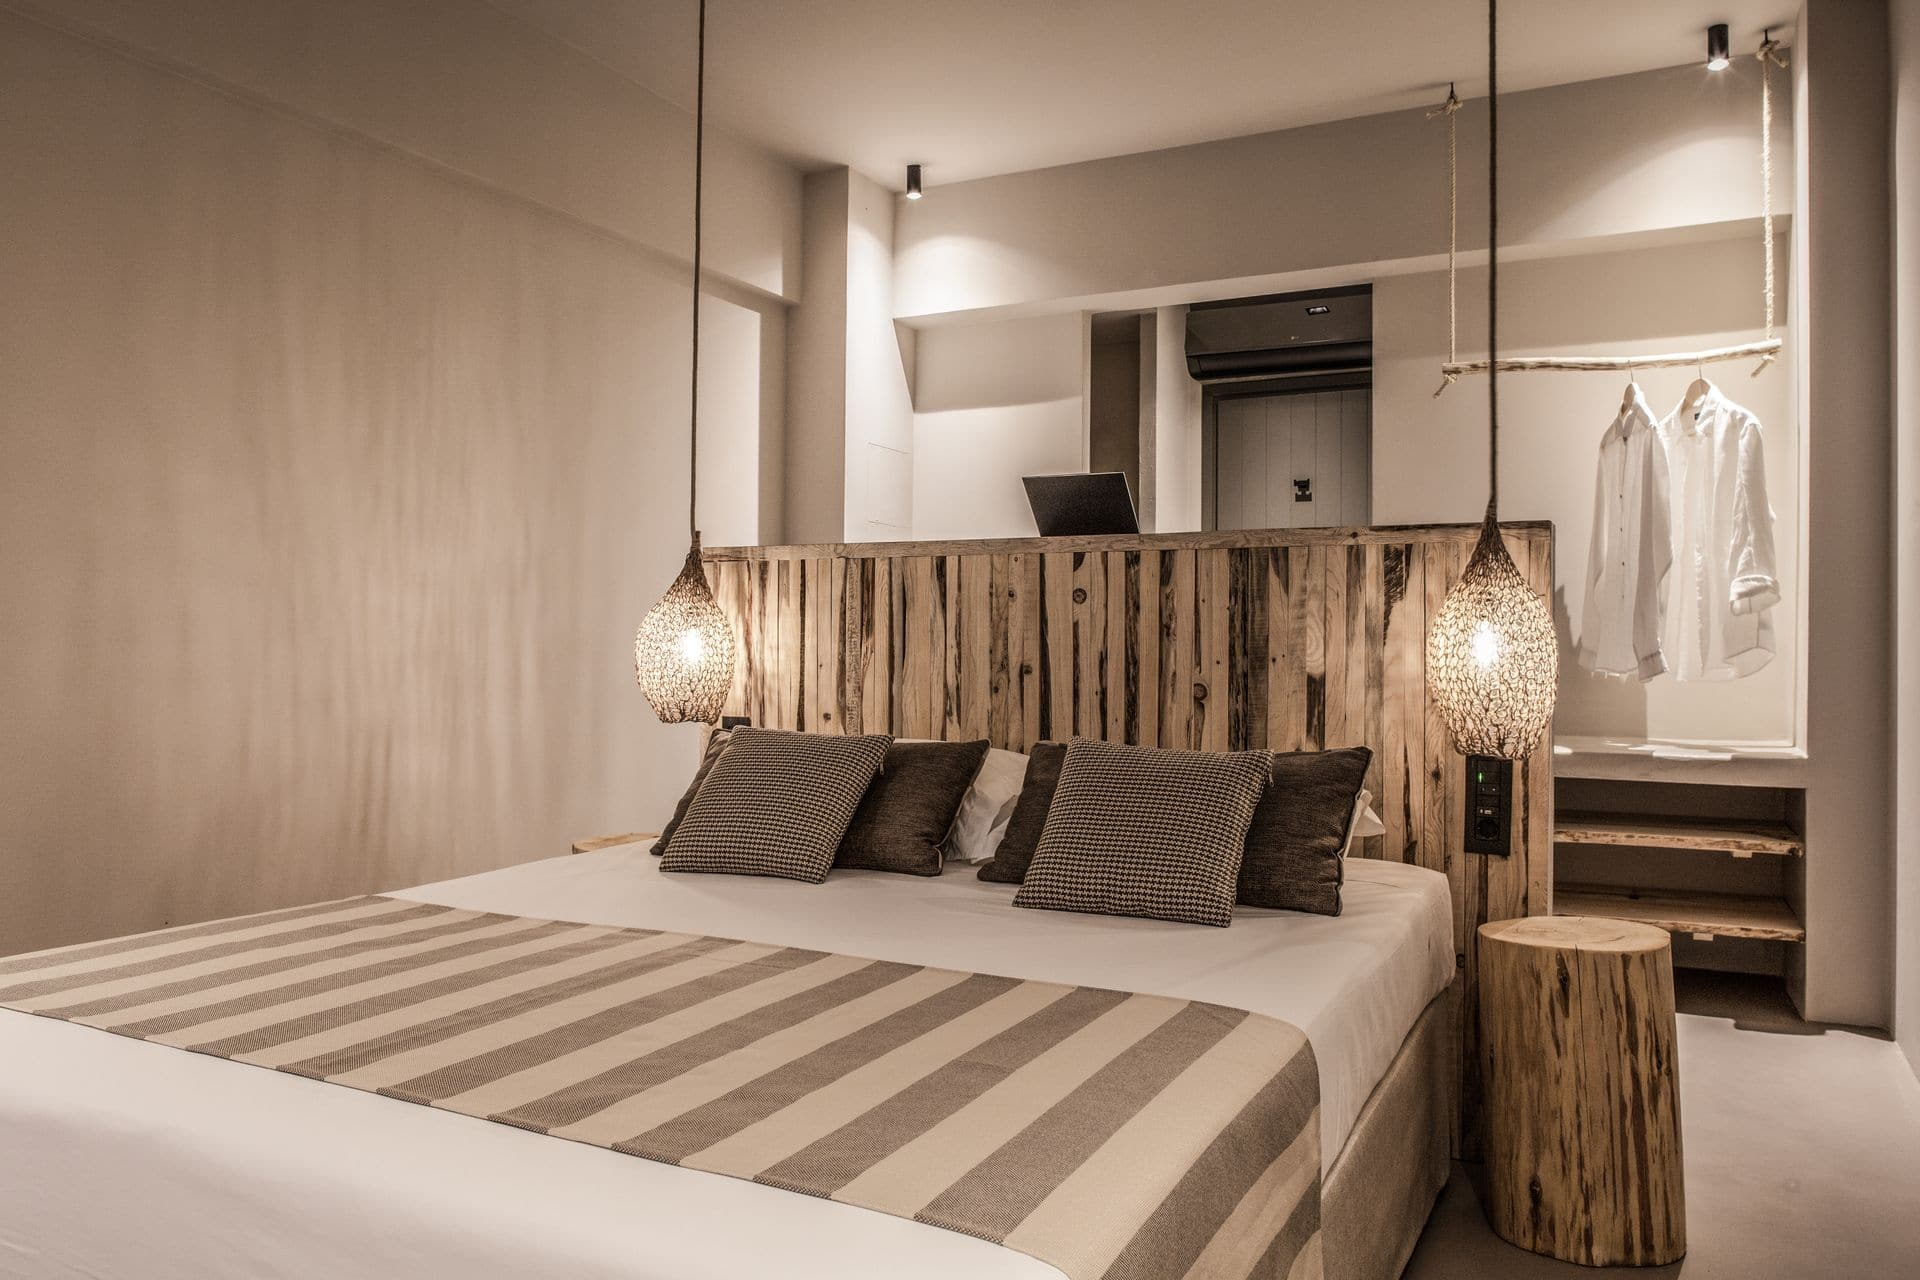 The bedroom of the luxury suite with pool in Samos by Doryssa Boutique Hotel